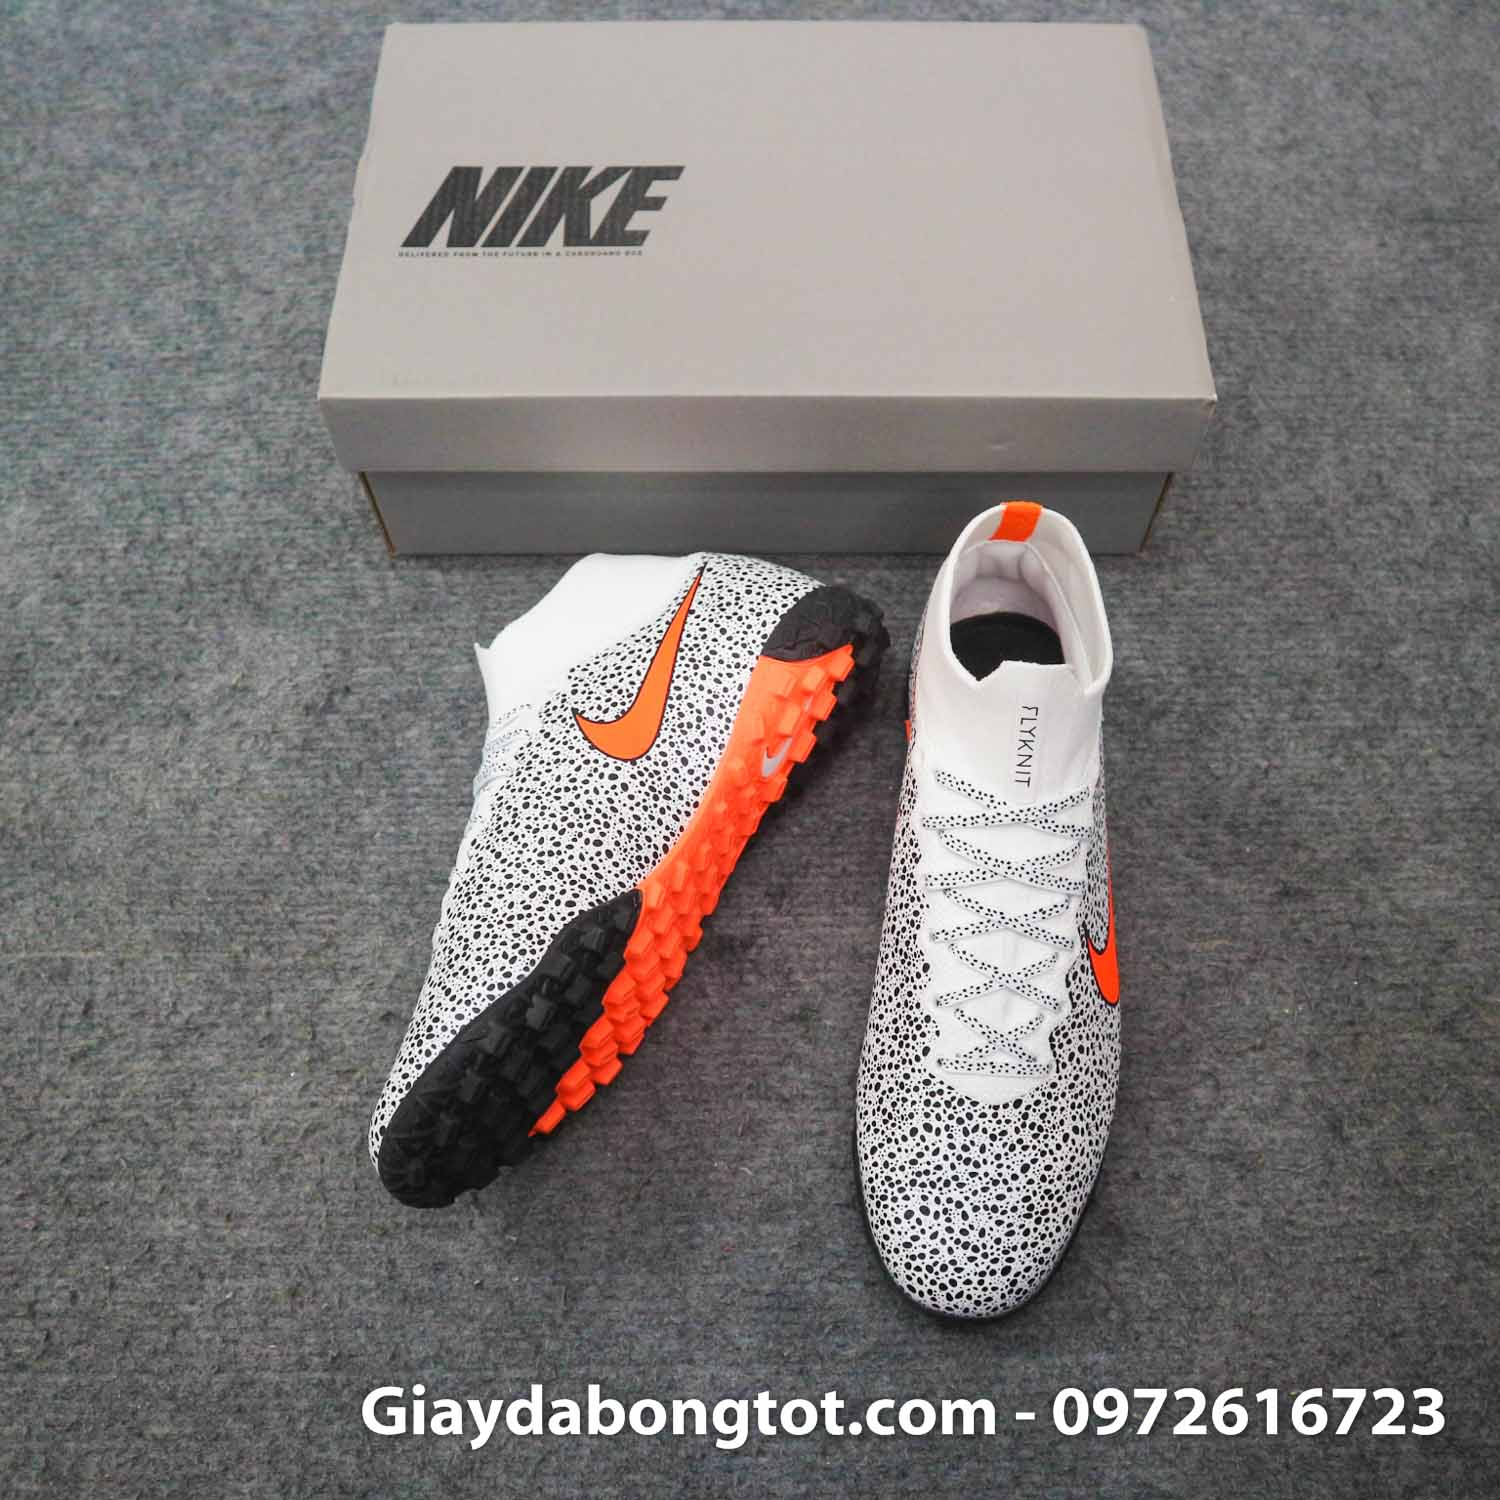 Giay da banh cao co nike mercurial superfly 7 elite tf cr7 safari trang den (3)